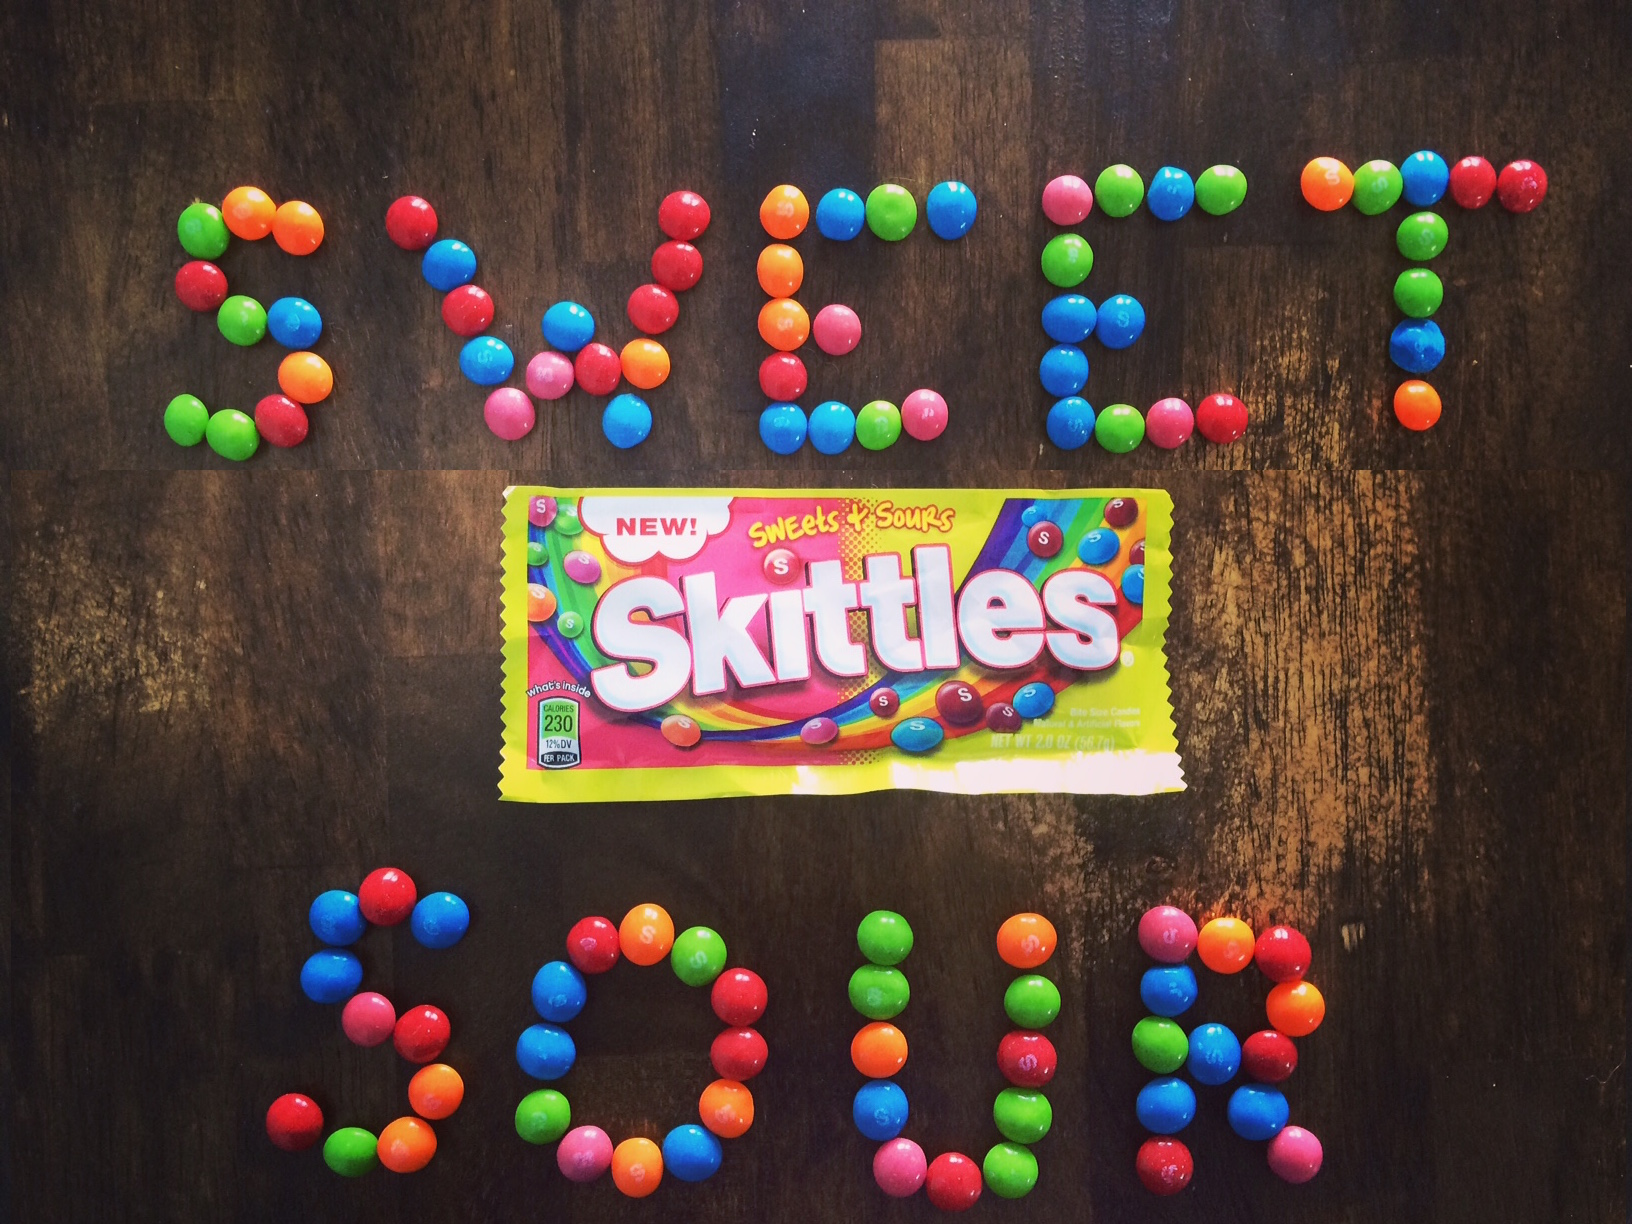 REVIEW: Sweets & Sours Skittles - Junk Banter